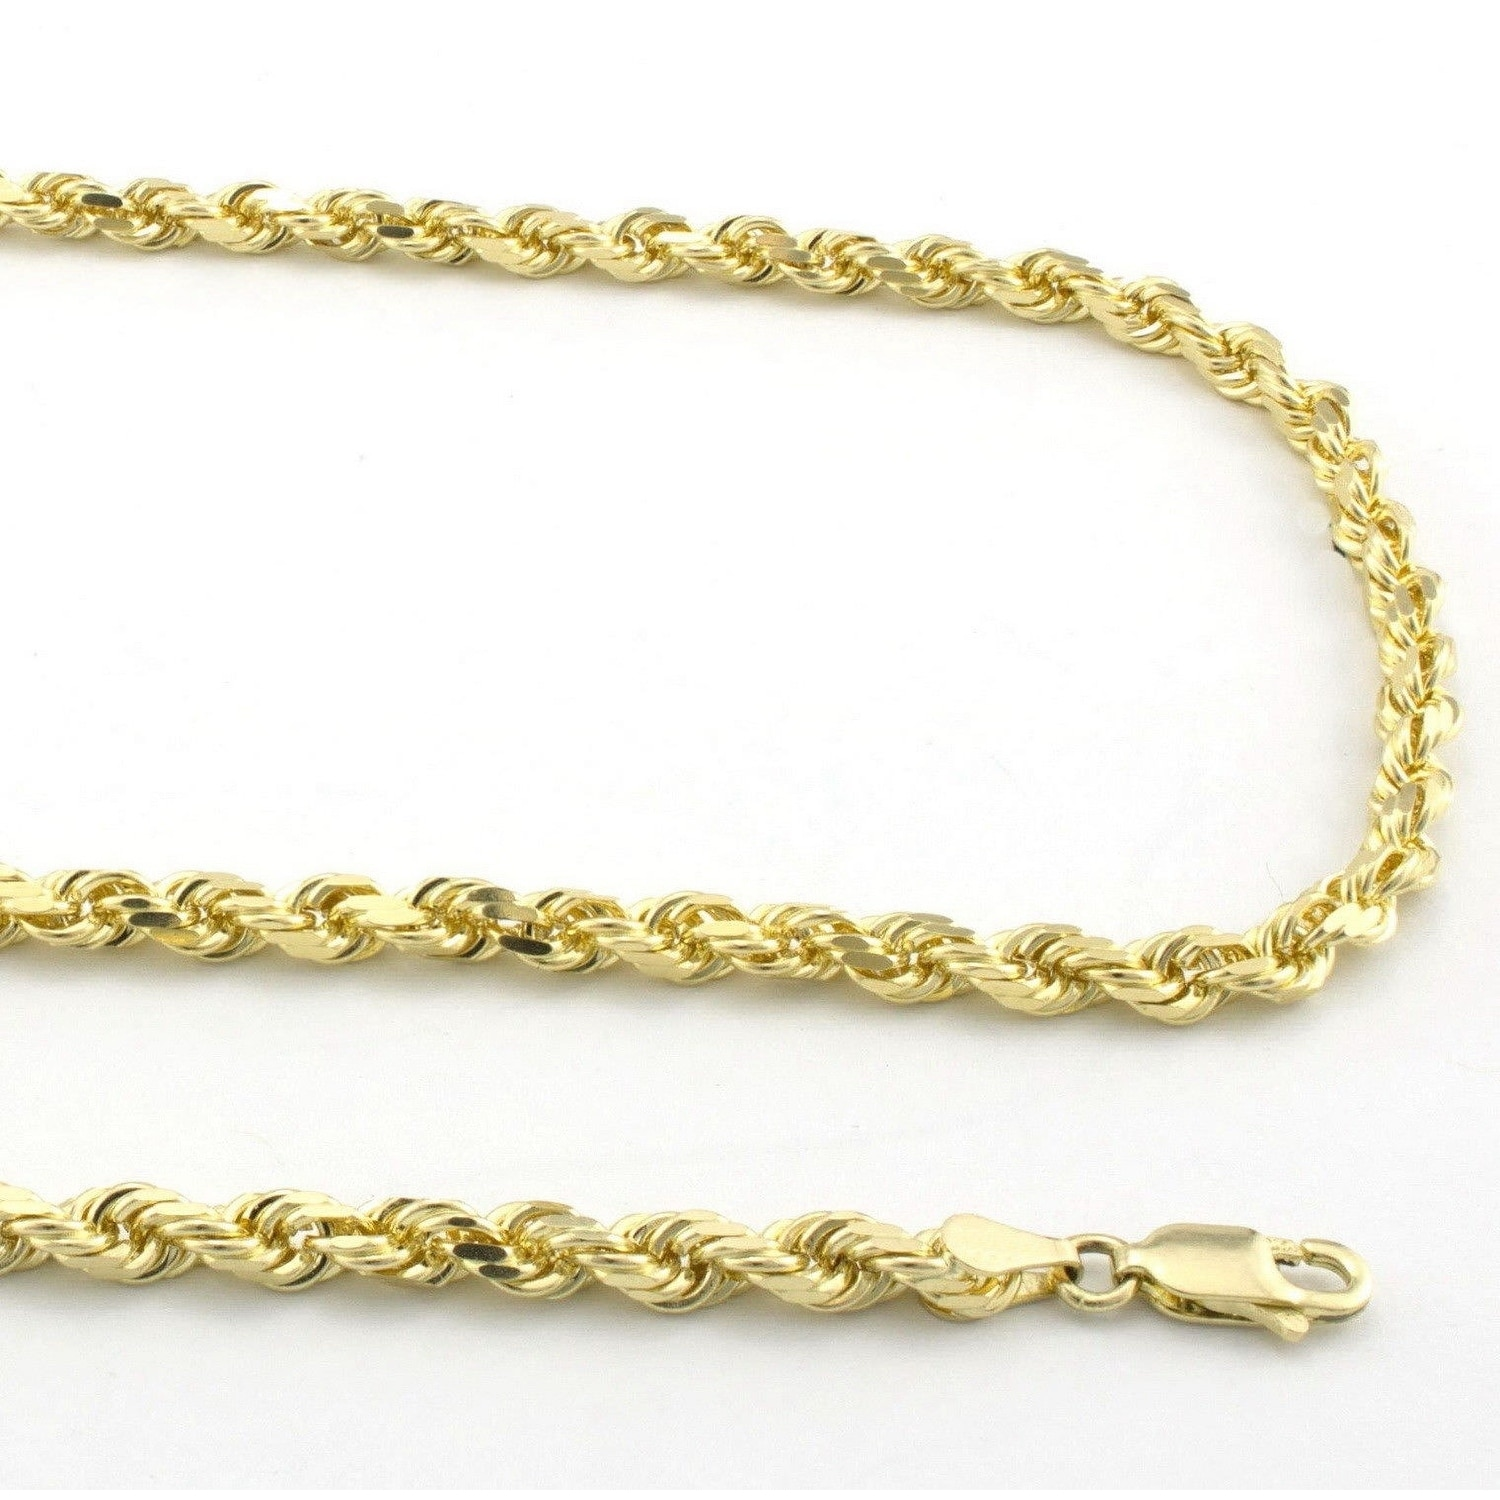 14K Yellow Gold Rope Chain Solid Necklace Pendant Diamond Cut Mens Women